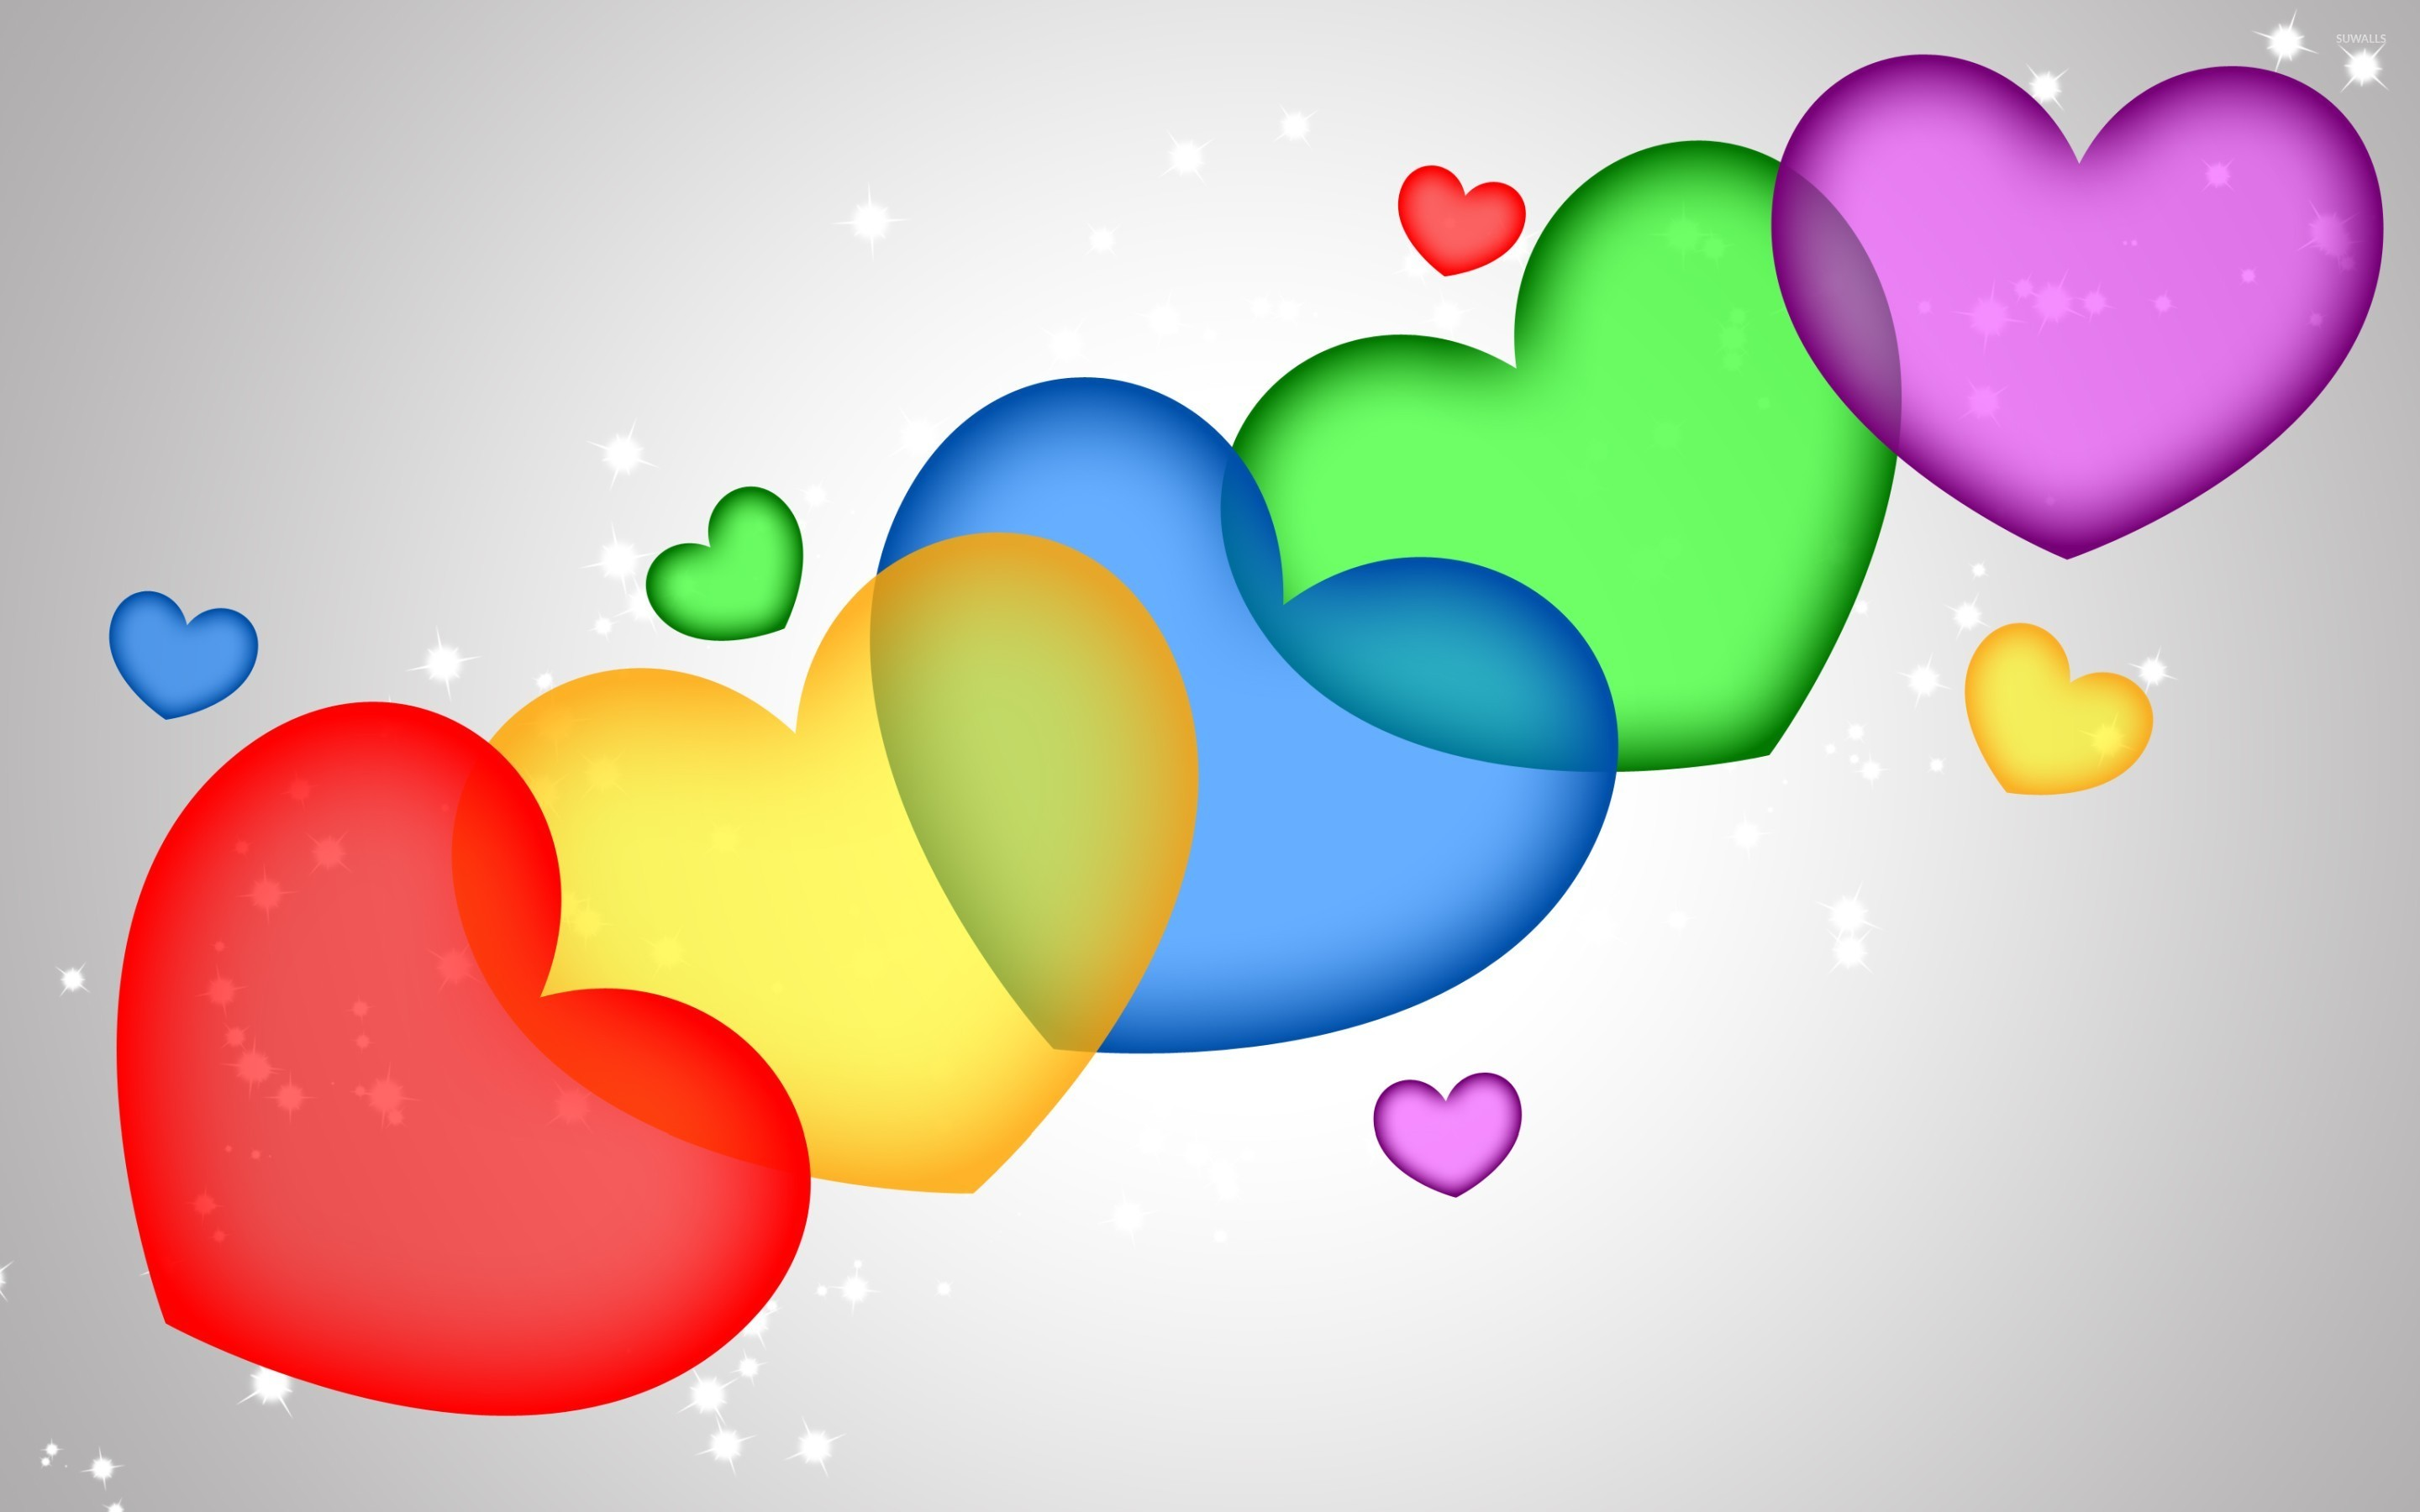 Colorful Hearts Wallpaper